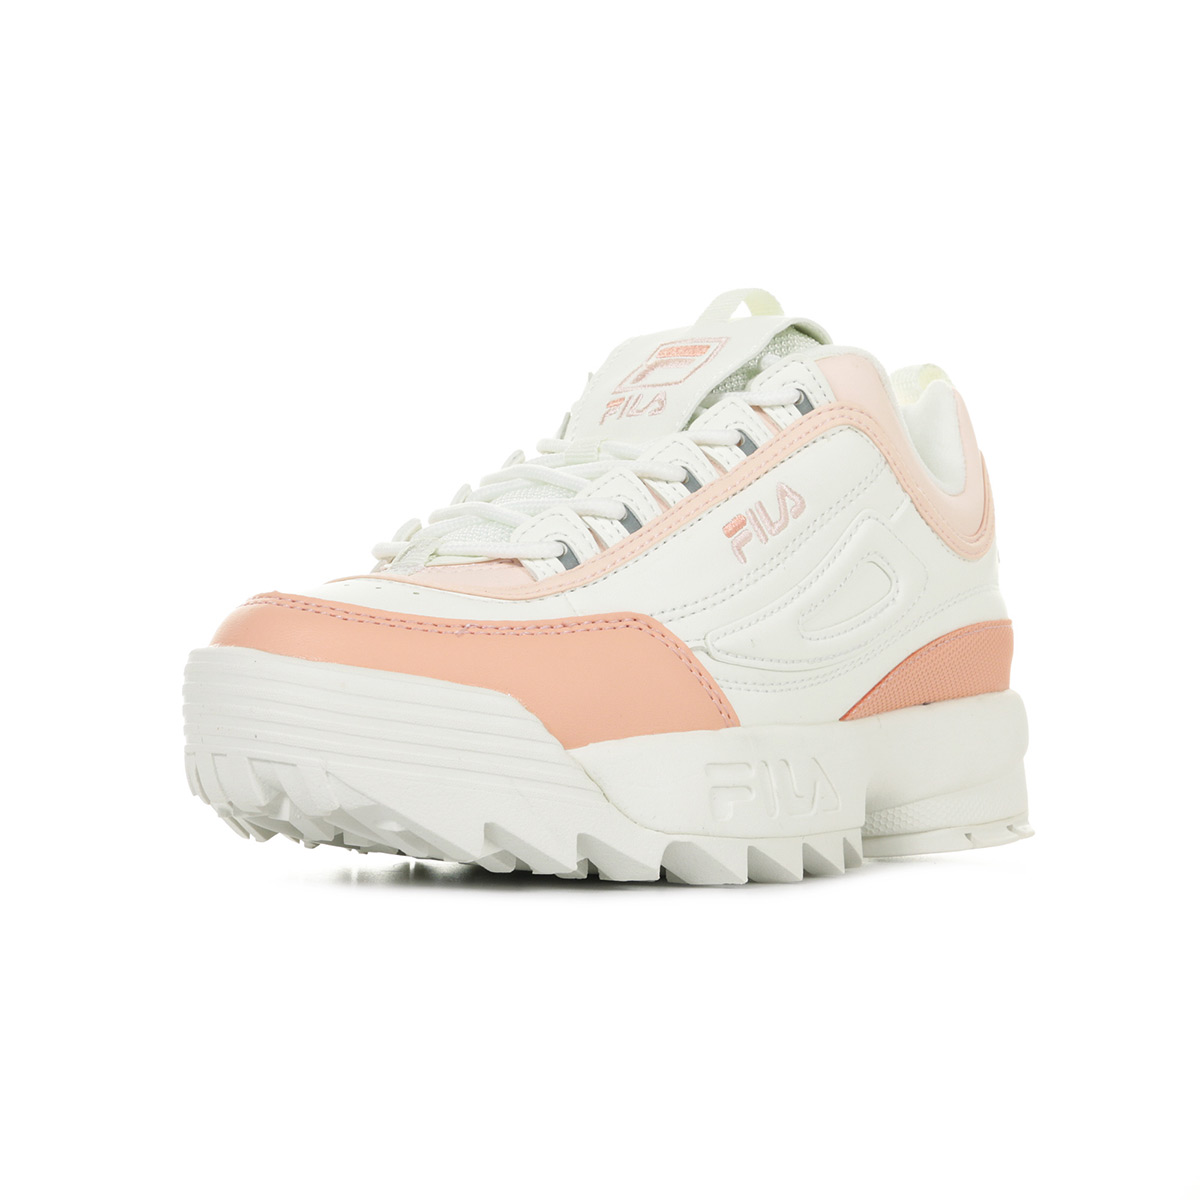 Fila Disruptor CB Low Wn's 101060402W, Baskets mode femme